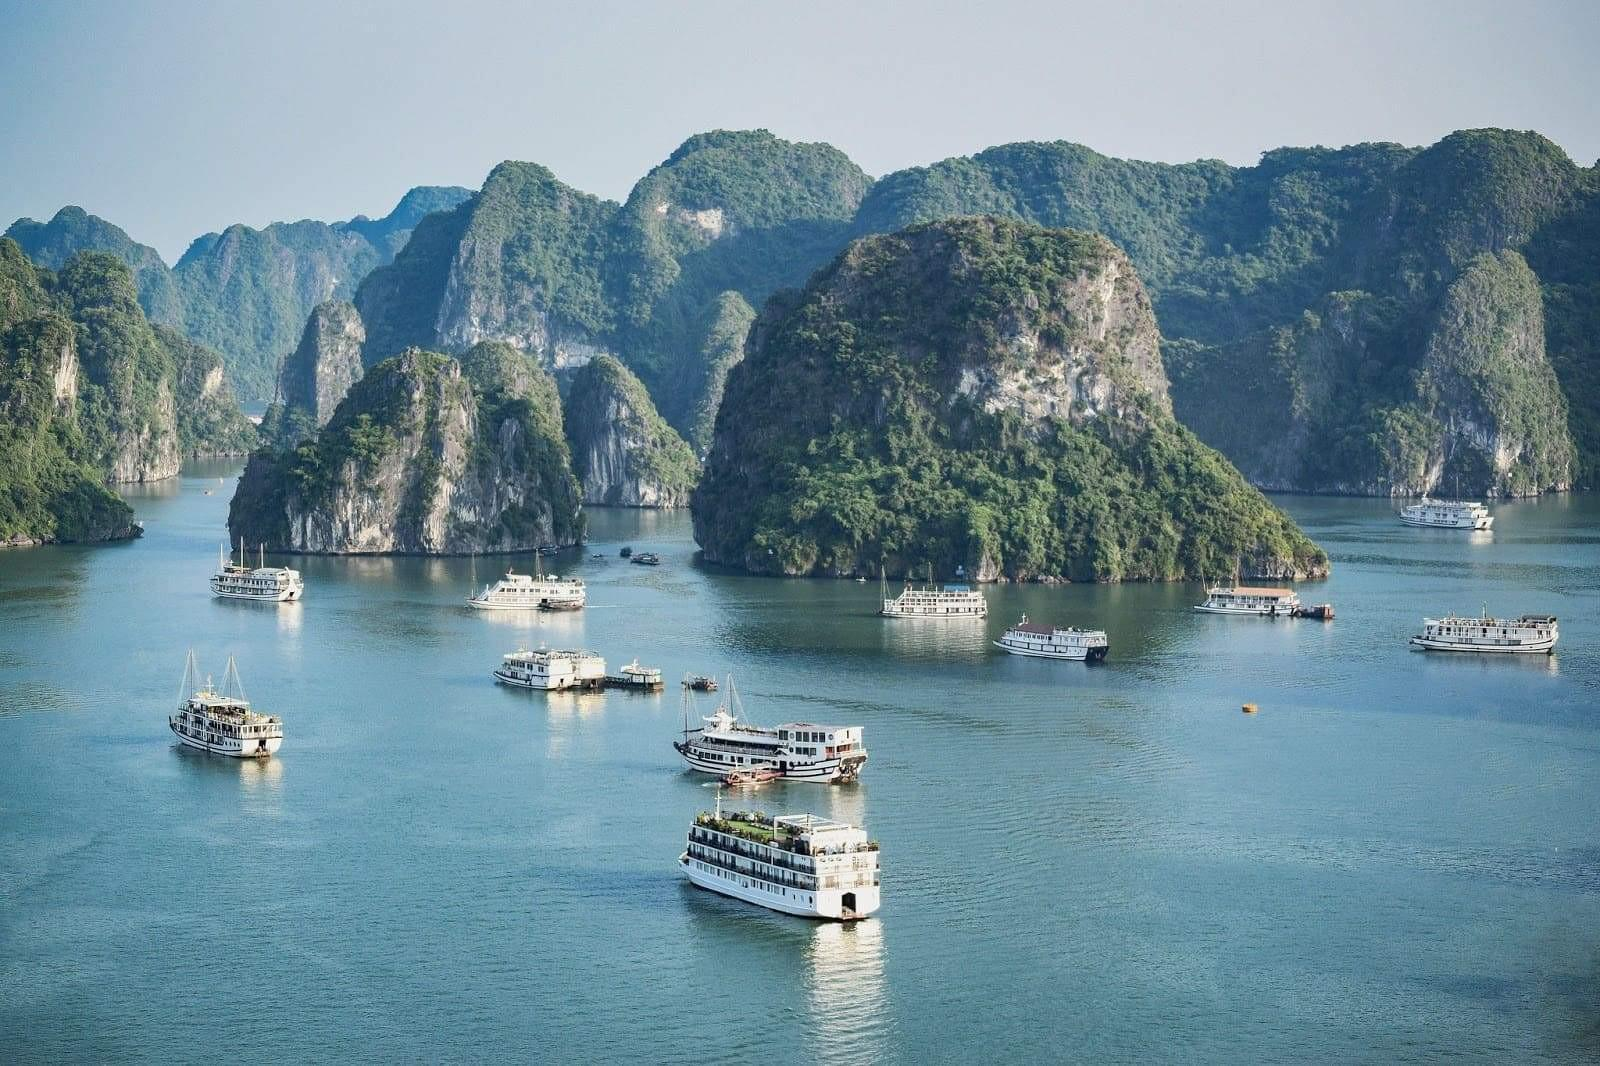 Planning your holiday in Vietnam: Which Halong Bay tour is best?